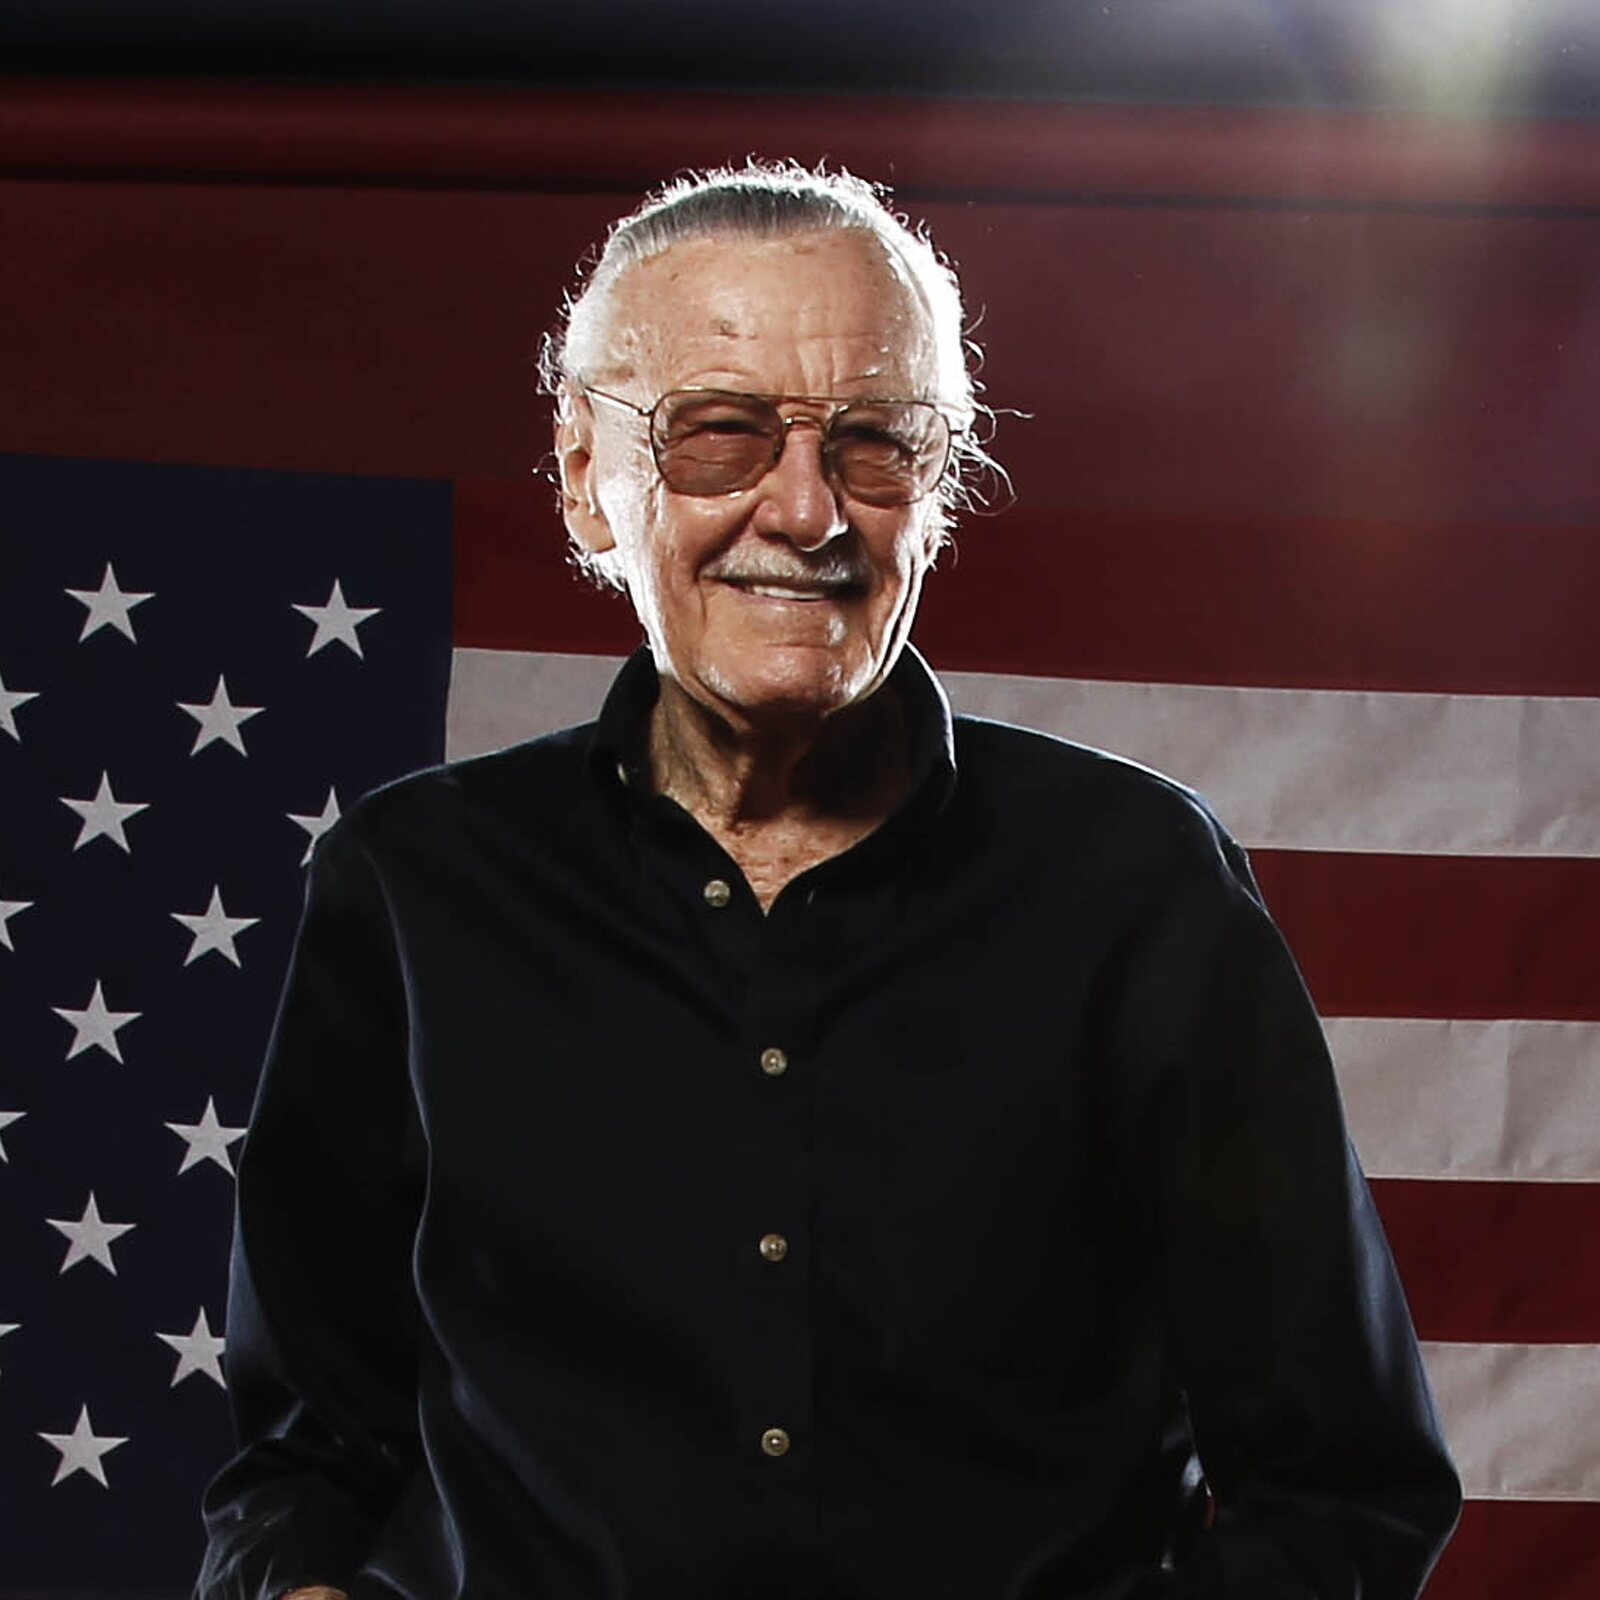 Stan Lee already has his own street in New York